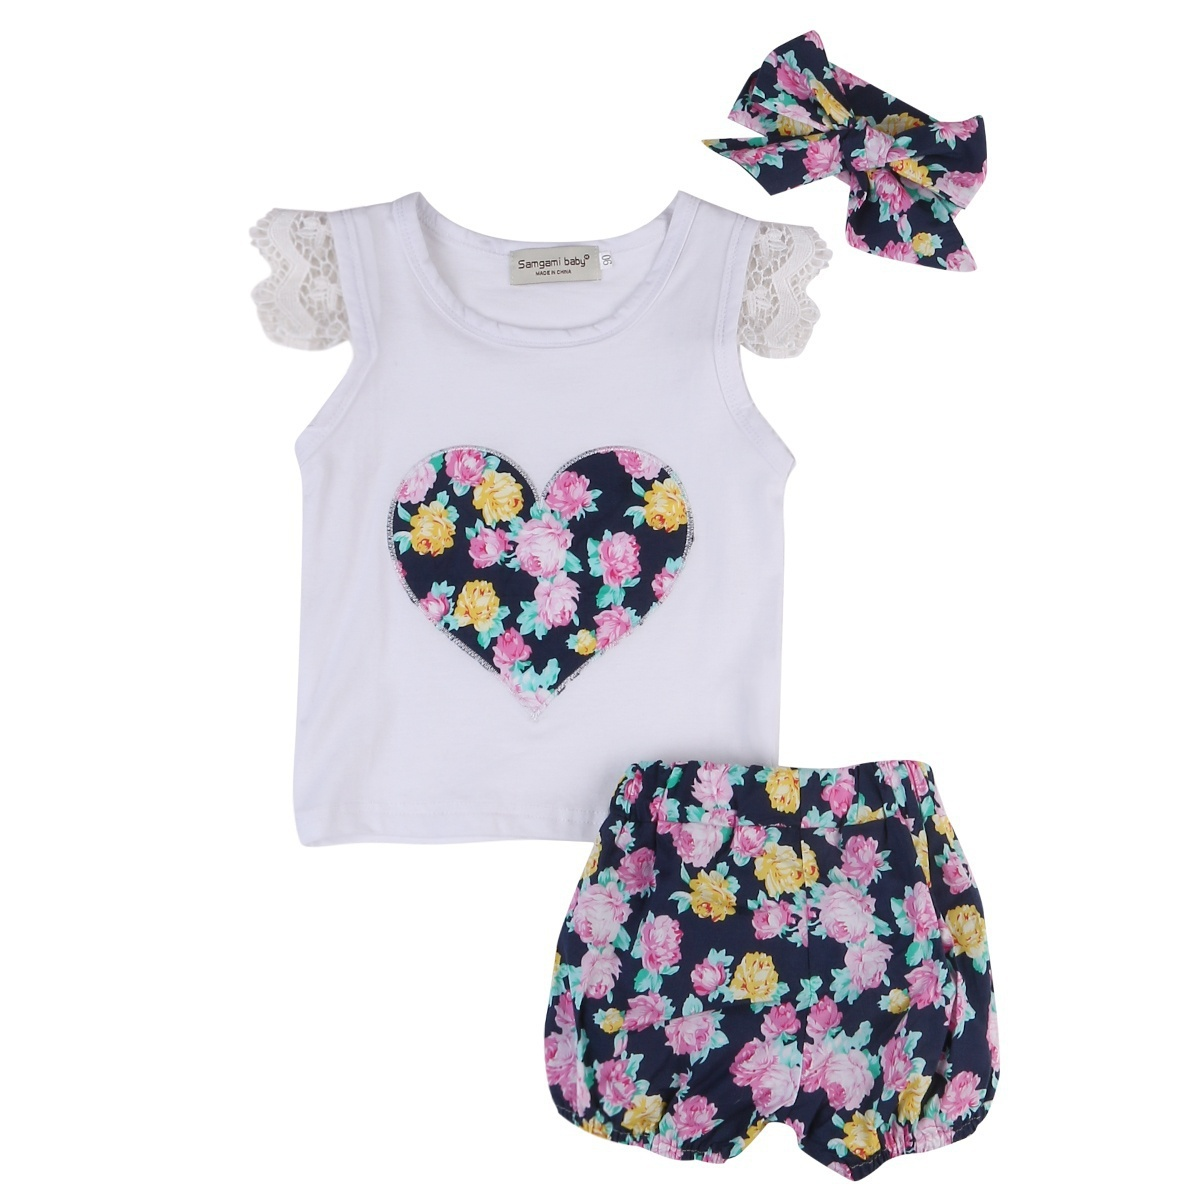 UK Toddler Baby Girl Lace Sleeveless Vest Top Stripe Long Pants Clothes 1-6Y Set